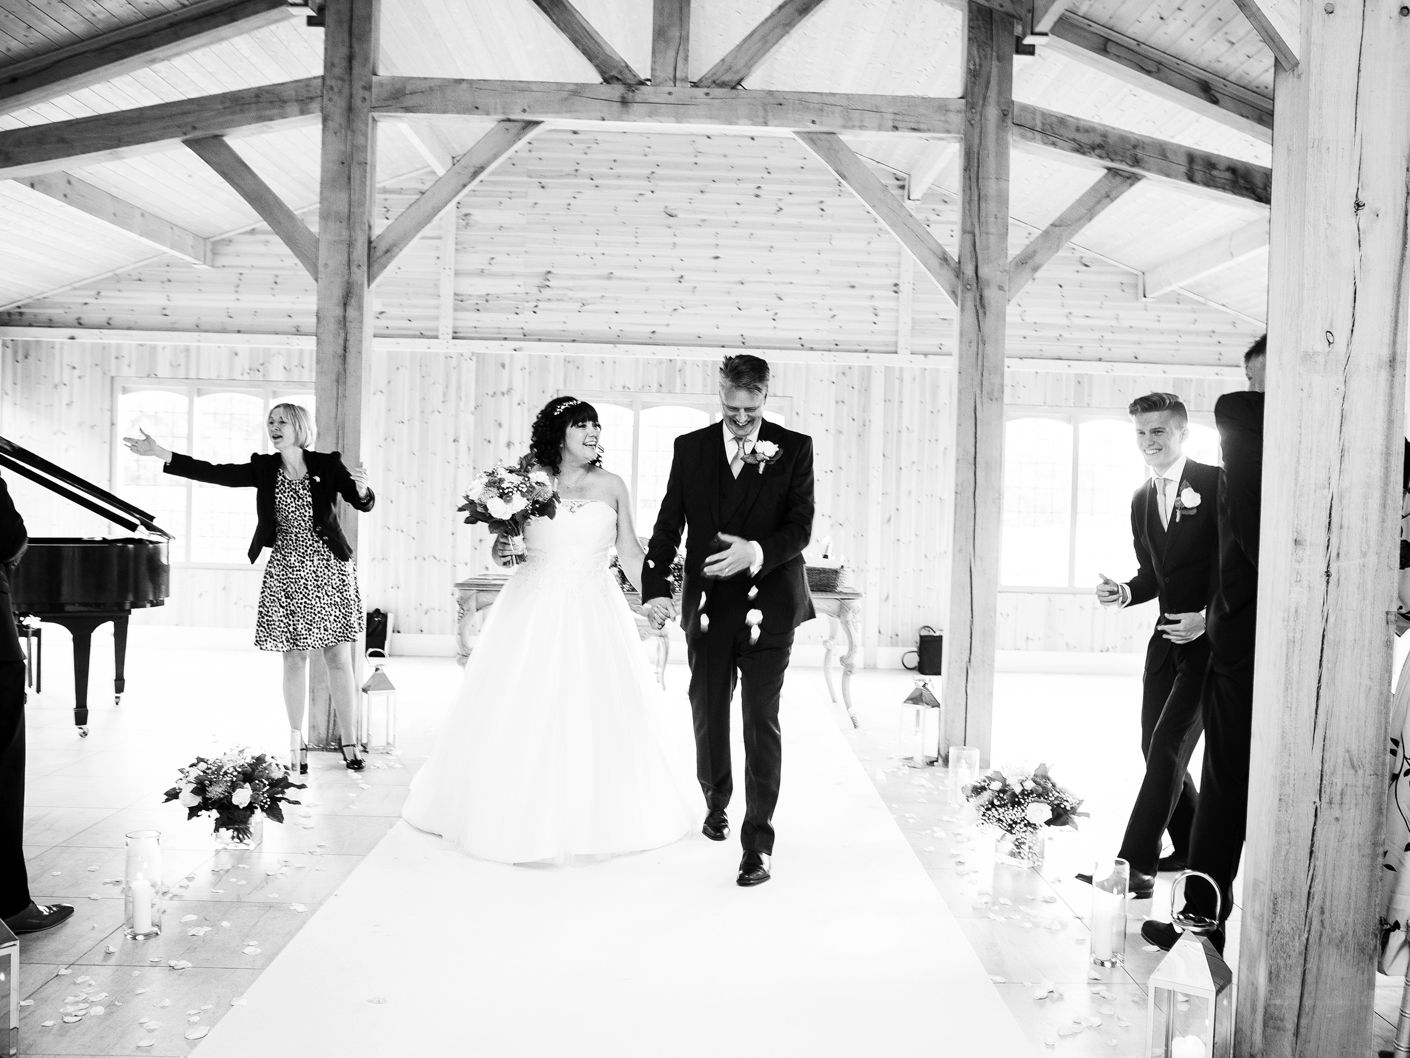 wedding-photography-of-the-confeeti-shot-at-merrydale-manor-knutsford-cheshire